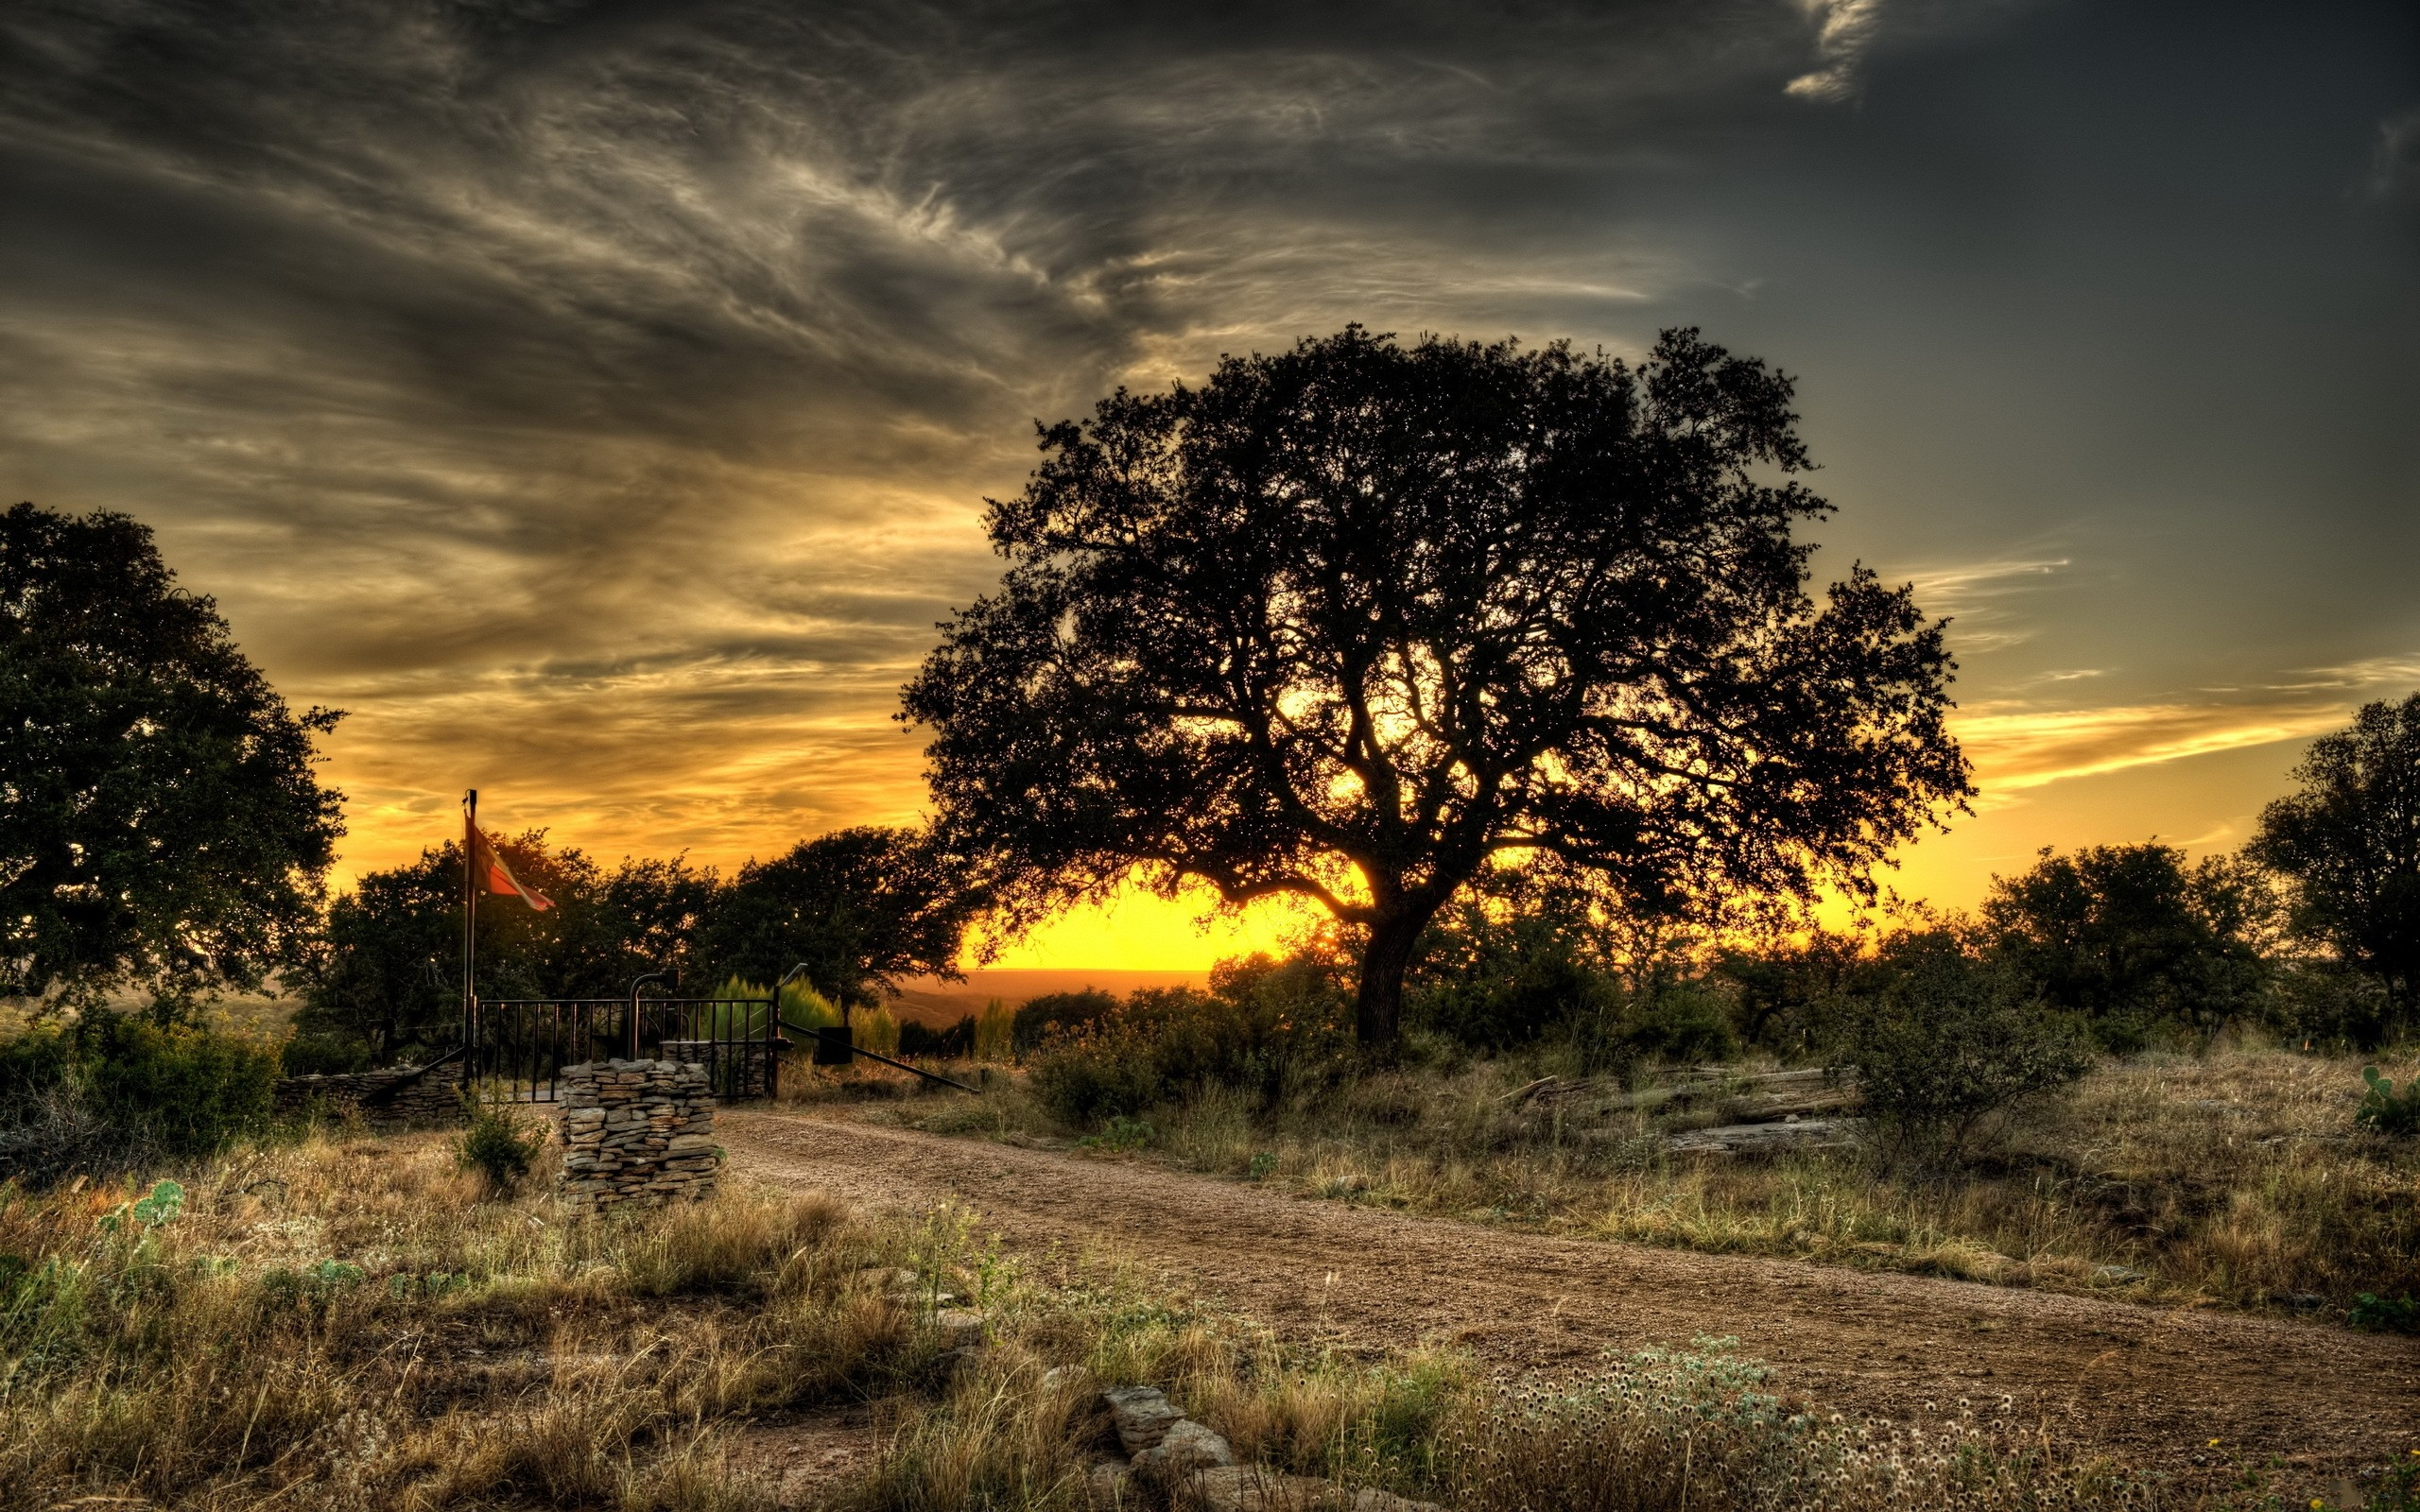 Landscapes Nature Trees Hdr Photography 30346 HD Wallpaper Res 2560x1600